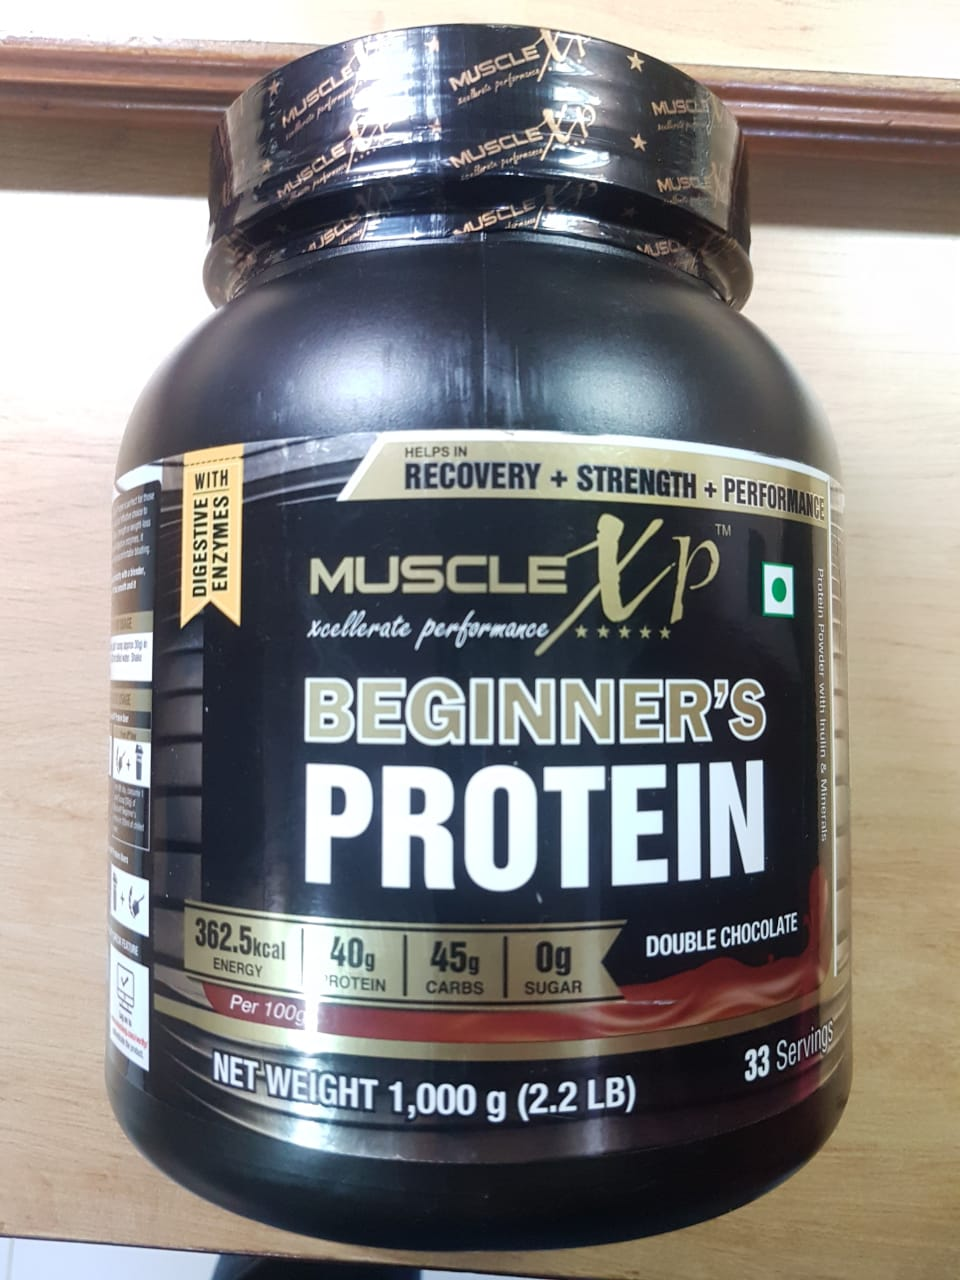 MuscleXP Beginner's Protein With Digestive Enzymes-Right Protein for Muscle Building-By amantorka